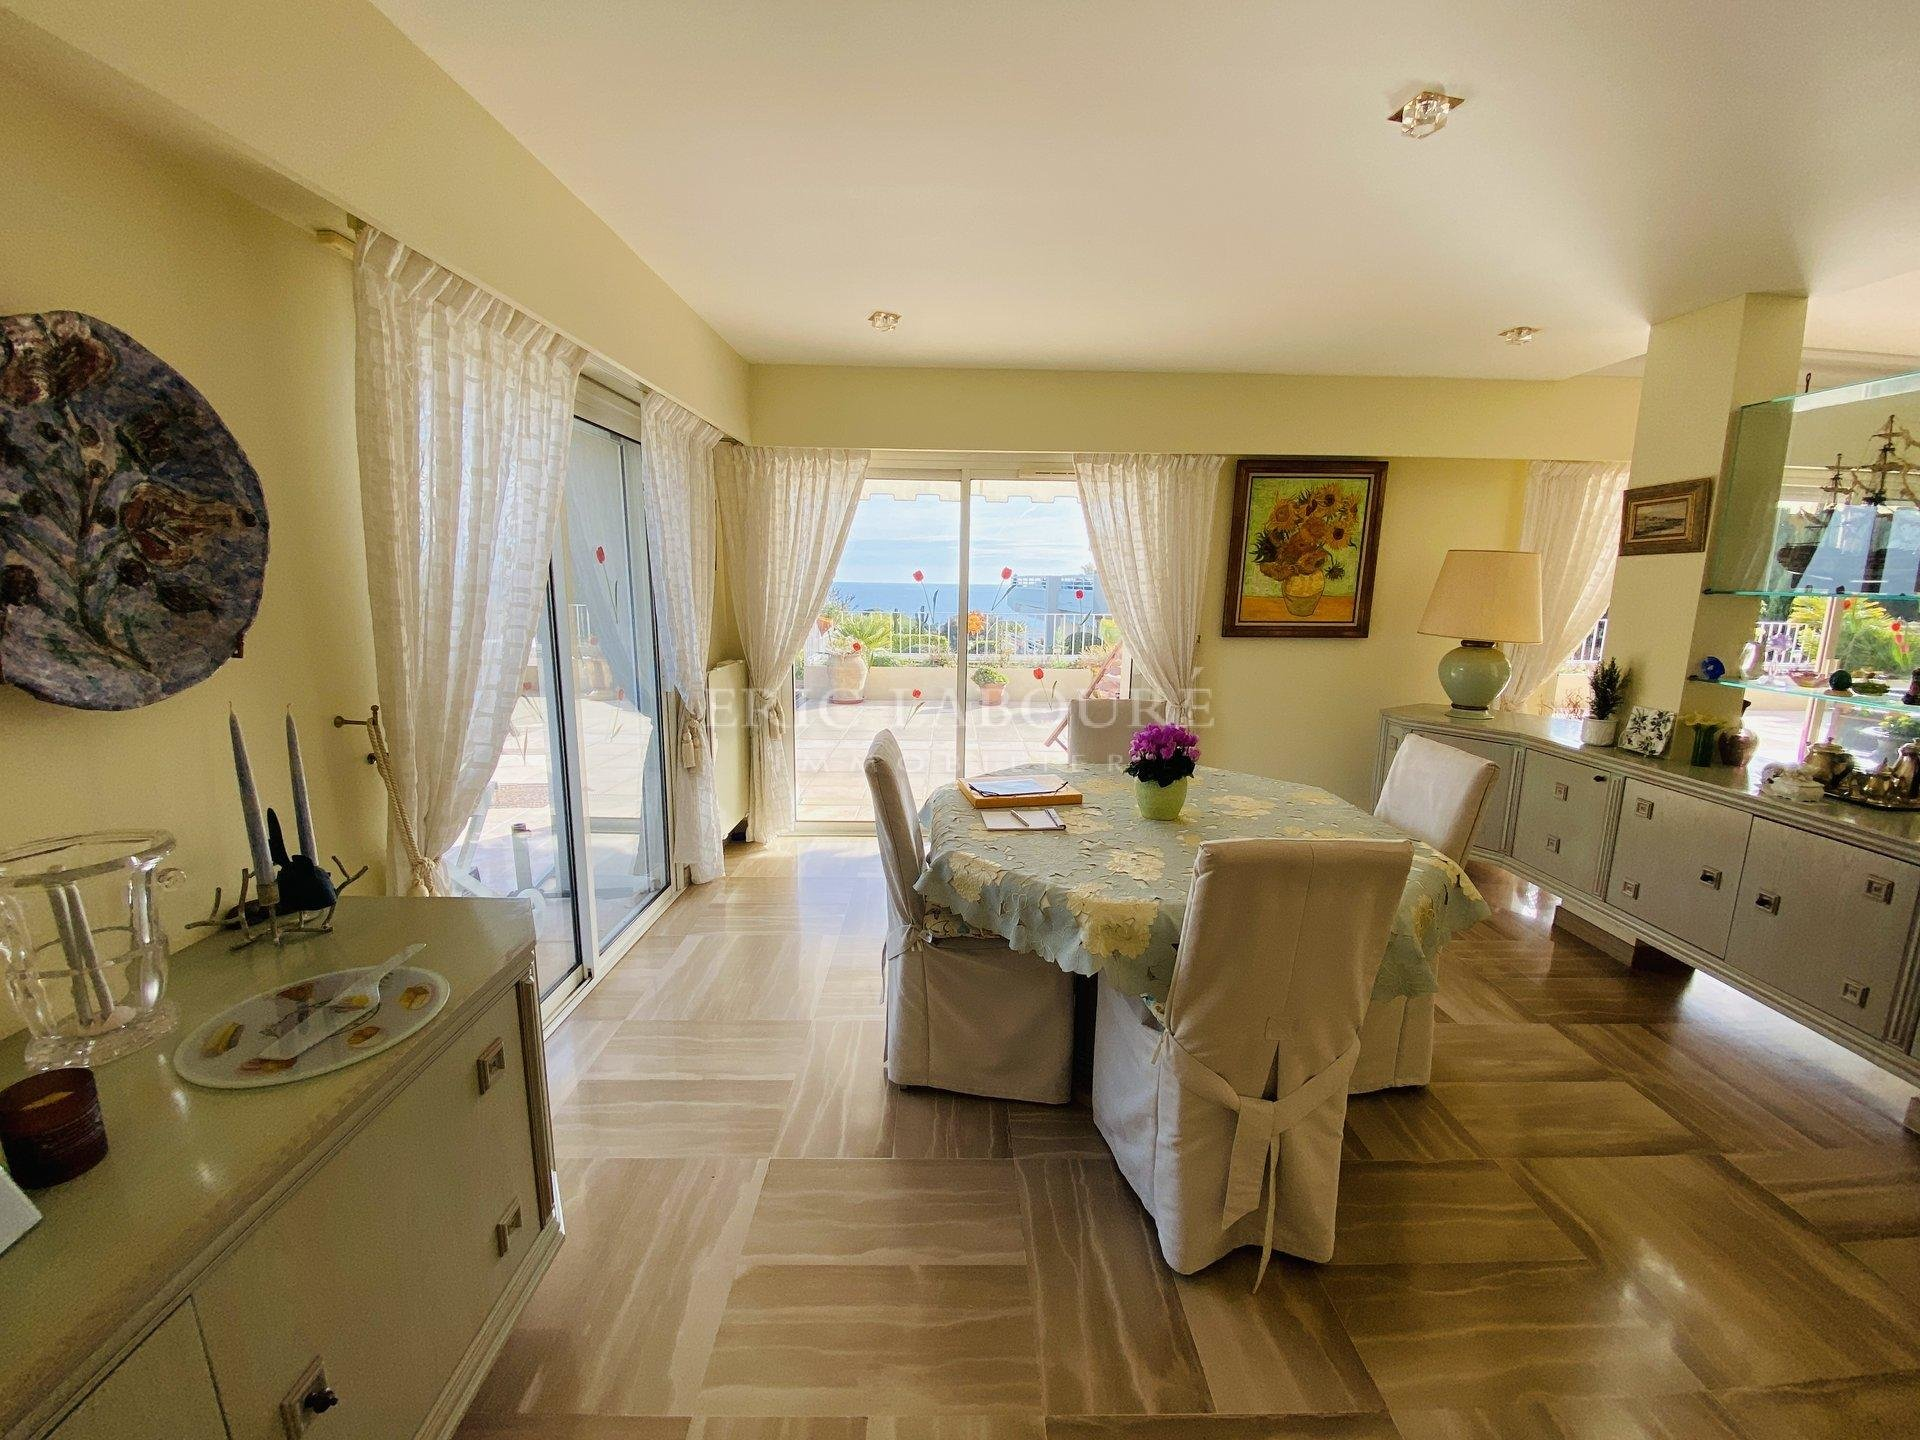 FOR SALE - SPACIOUS APARTMENT WITH PRIVATE TERRACE CANNES SEA VIEW